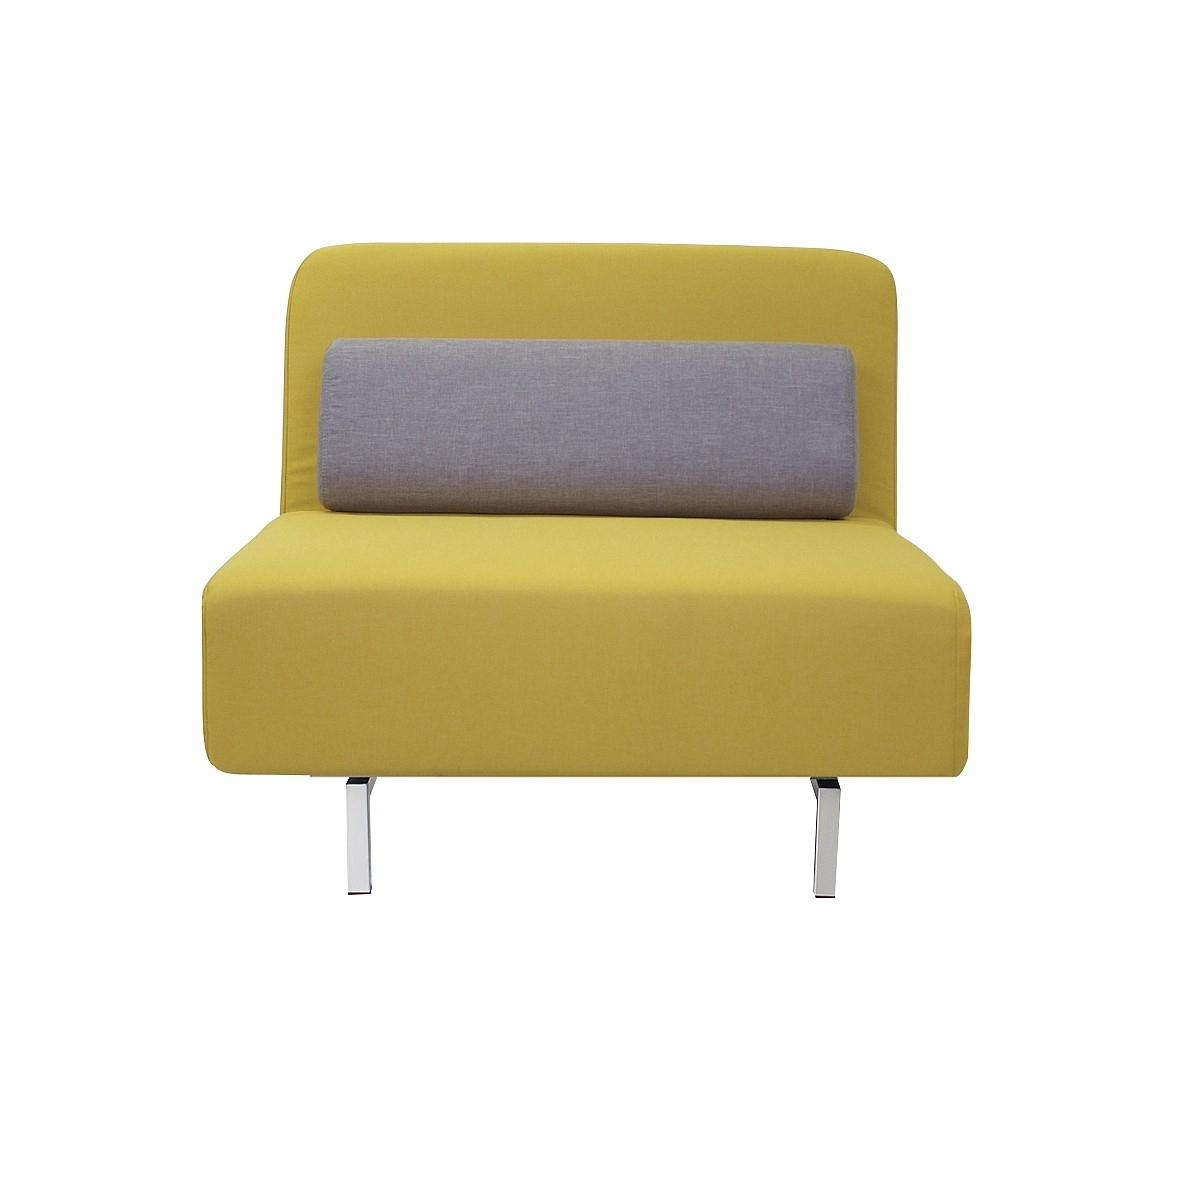 Muddler Sofa Bed – Yellow/grey | Sofas | Living | Nood Nz Intended For Single Sofas (View 3 of 10)